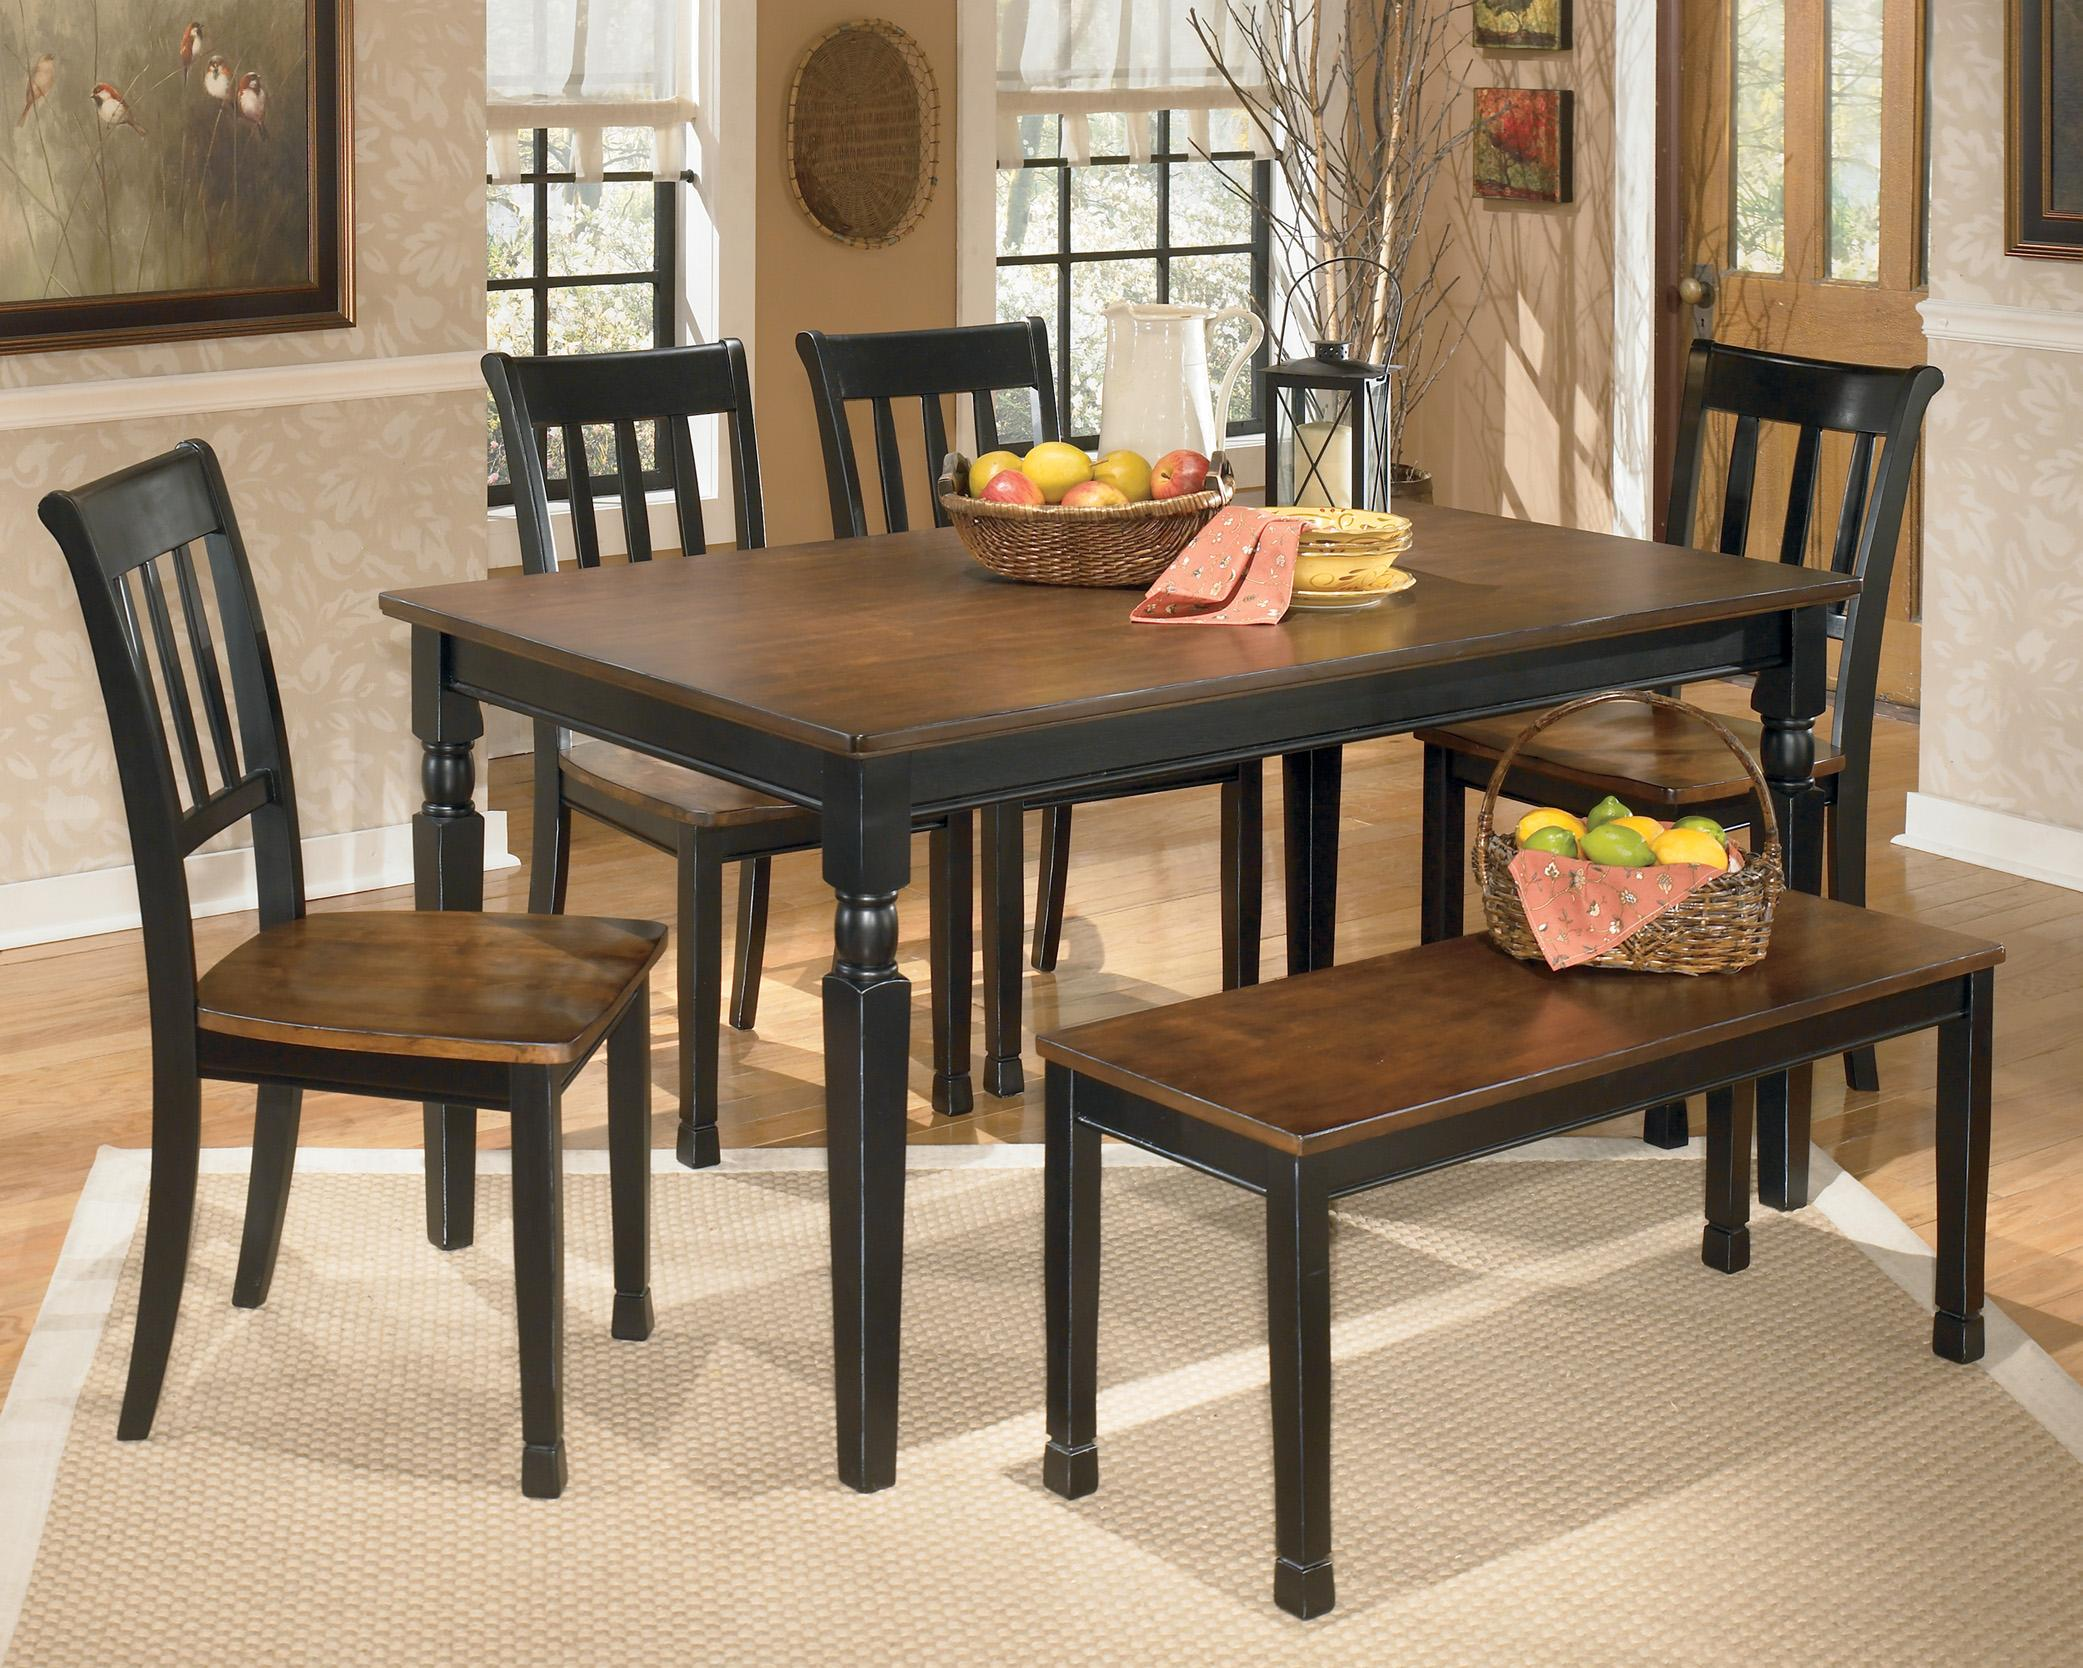 Signature Design By Ashley Owingsville 6 Piece Rectangular Table Set With Bench